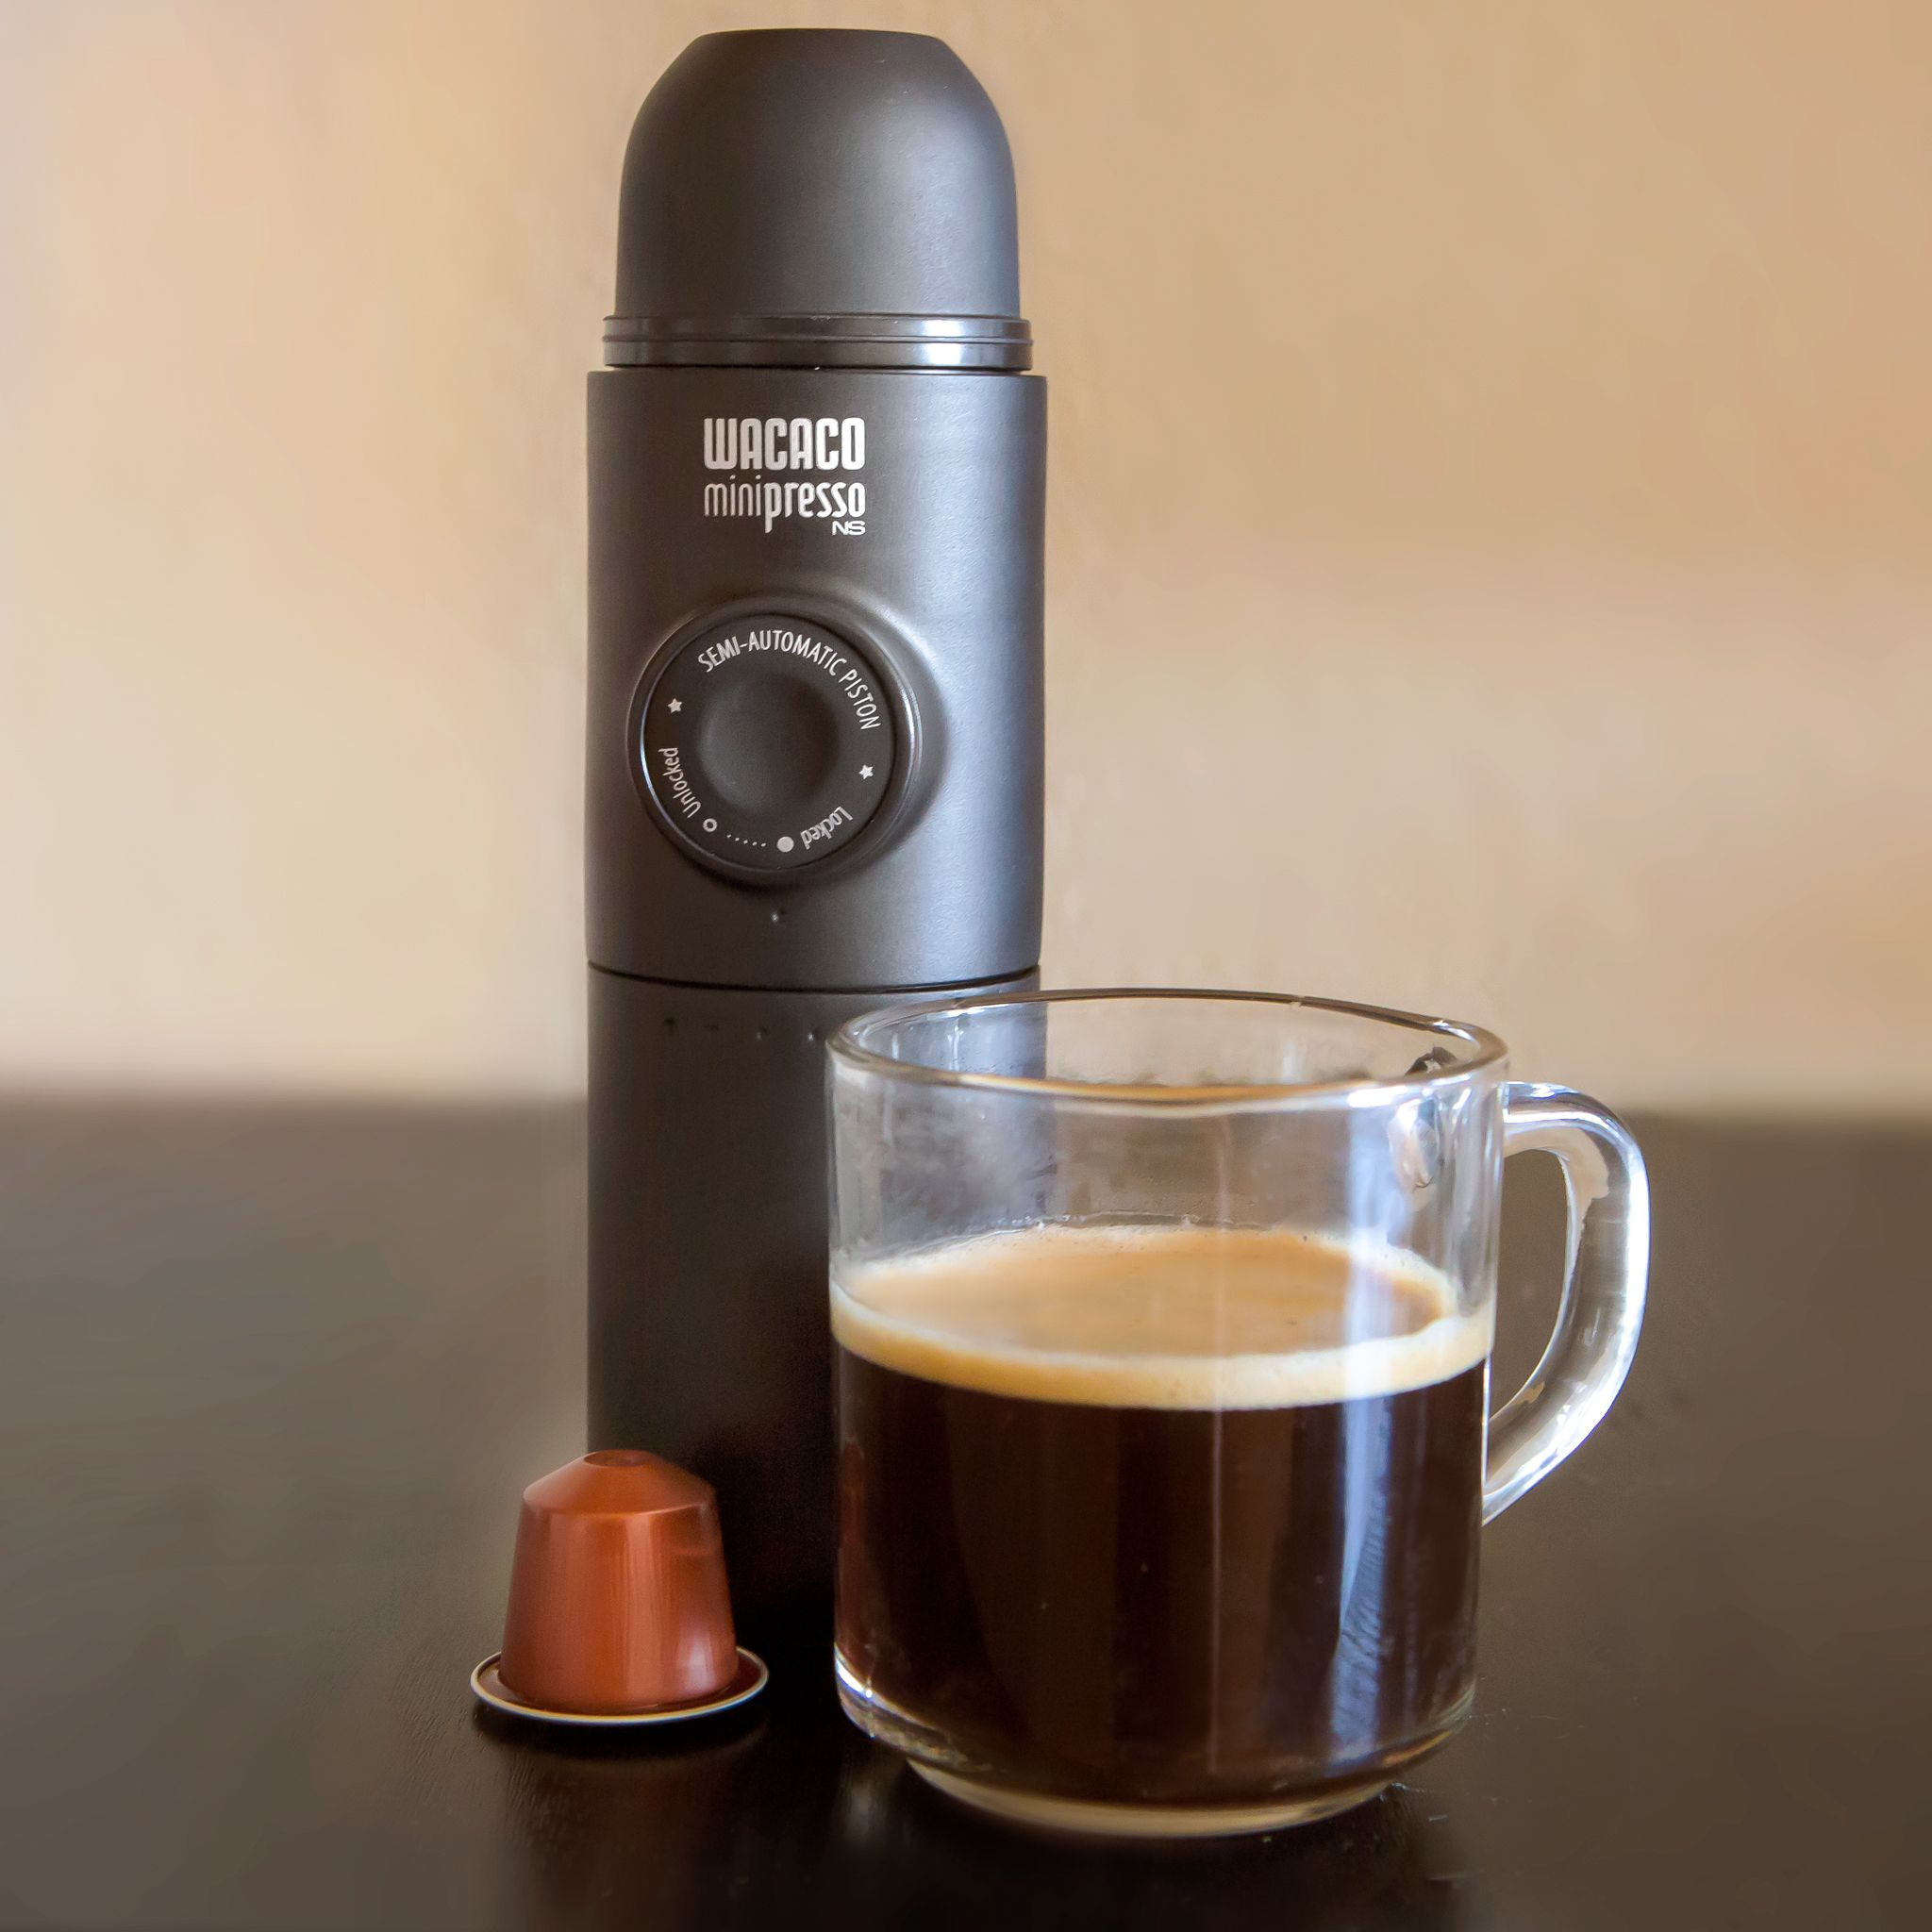 use the minipresso with the large water tank to make a 100ml shot to